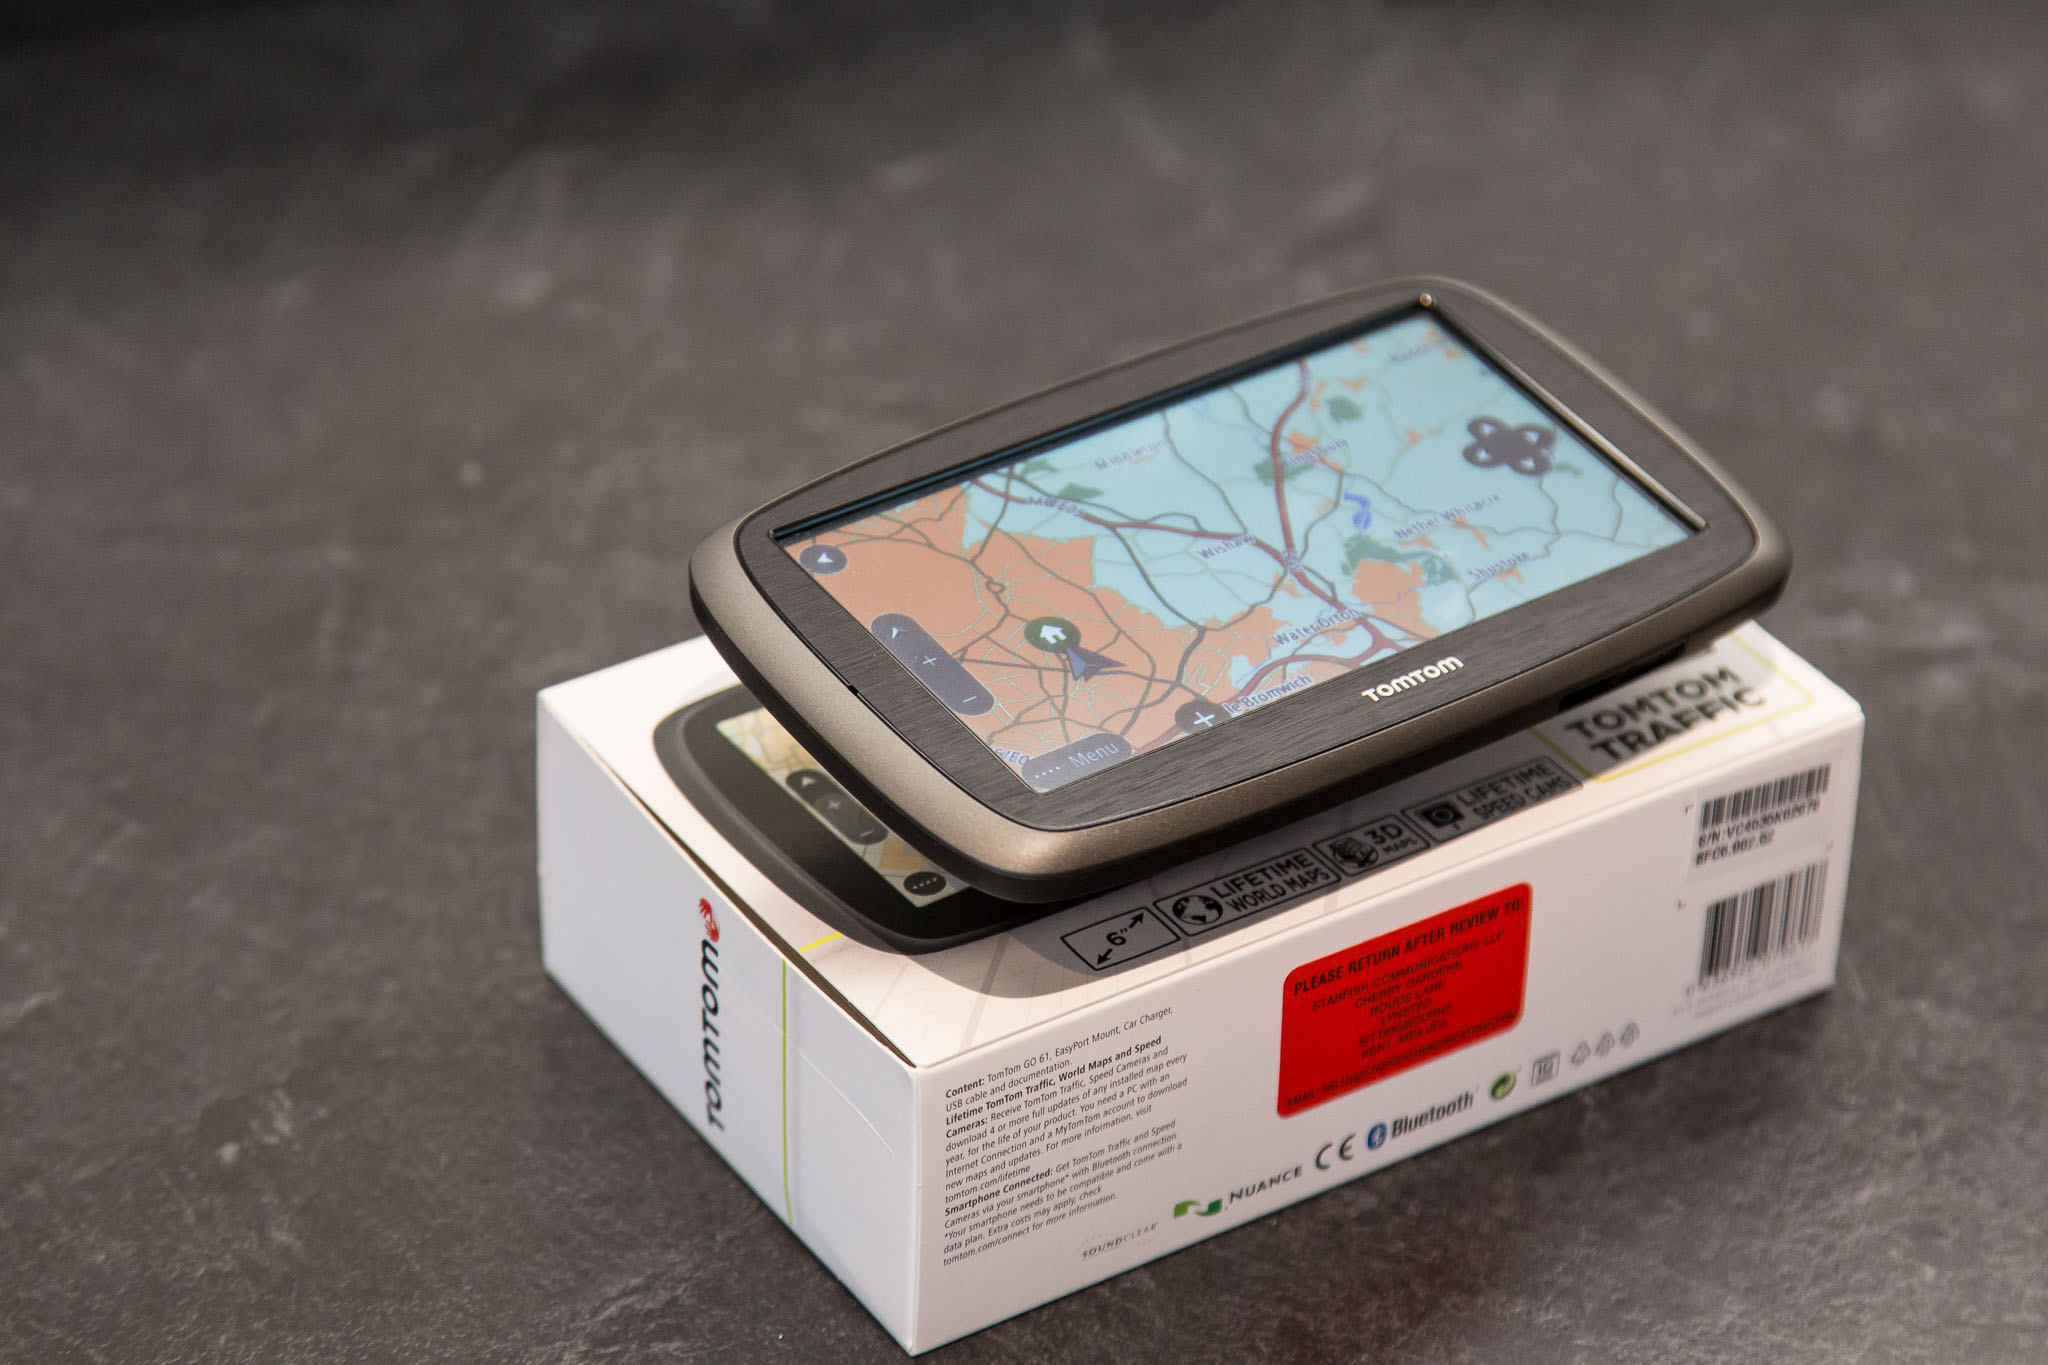 Tomtom Updated Maps Free Image - Tomtom xl usa canada map